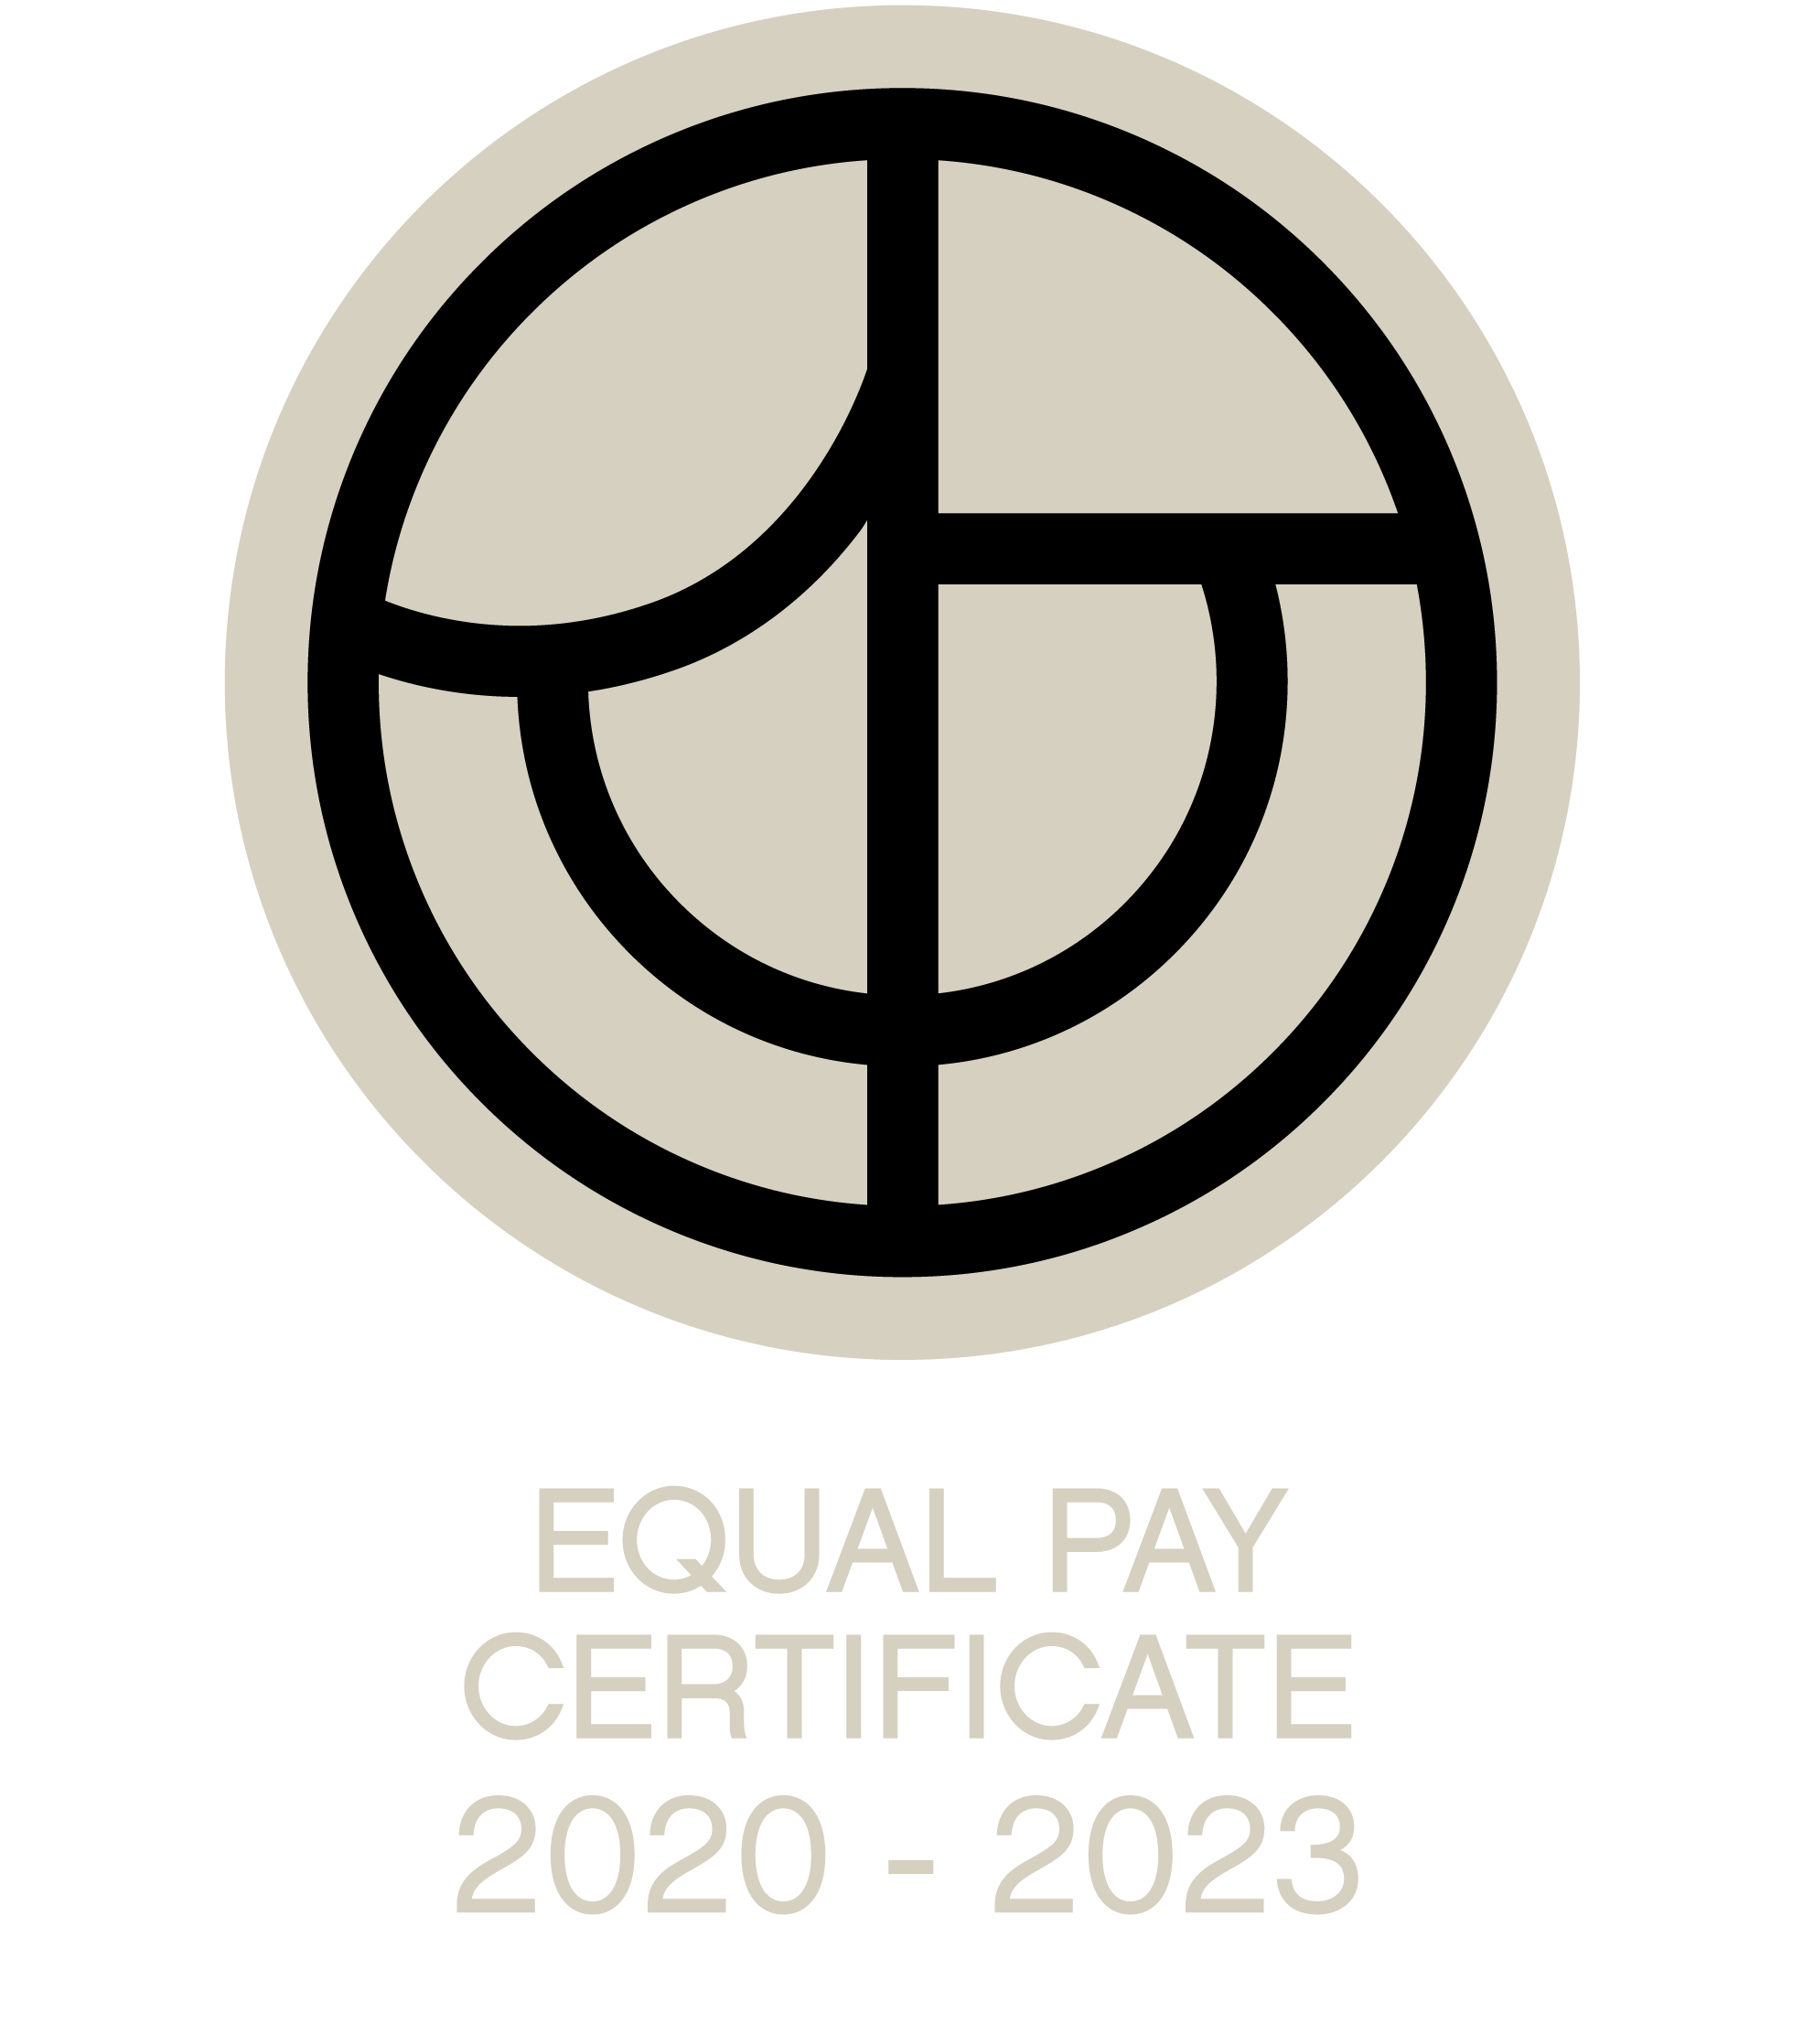 Equal pay 2020-2023 mark